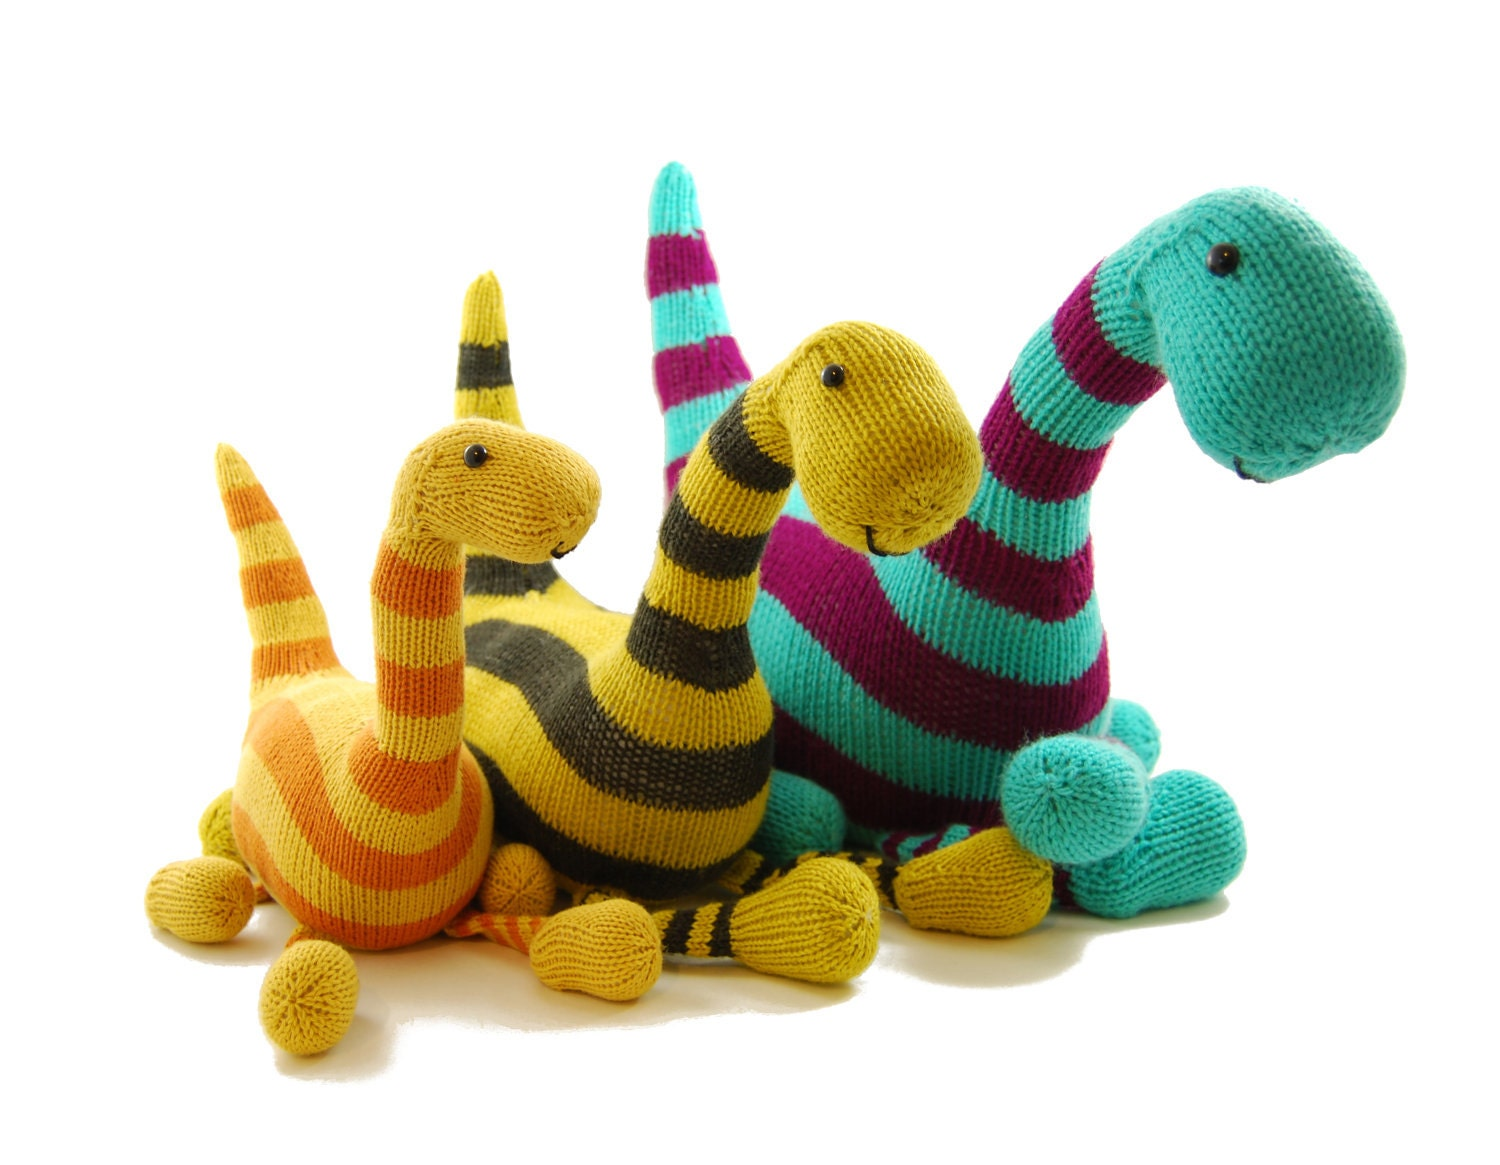 Mini Dinosaur Knitting Pattern : Basil the Boogie-Woogie Brontosaurus Knitting Pattern Pdf INSTANT DOWNLOAD fr...